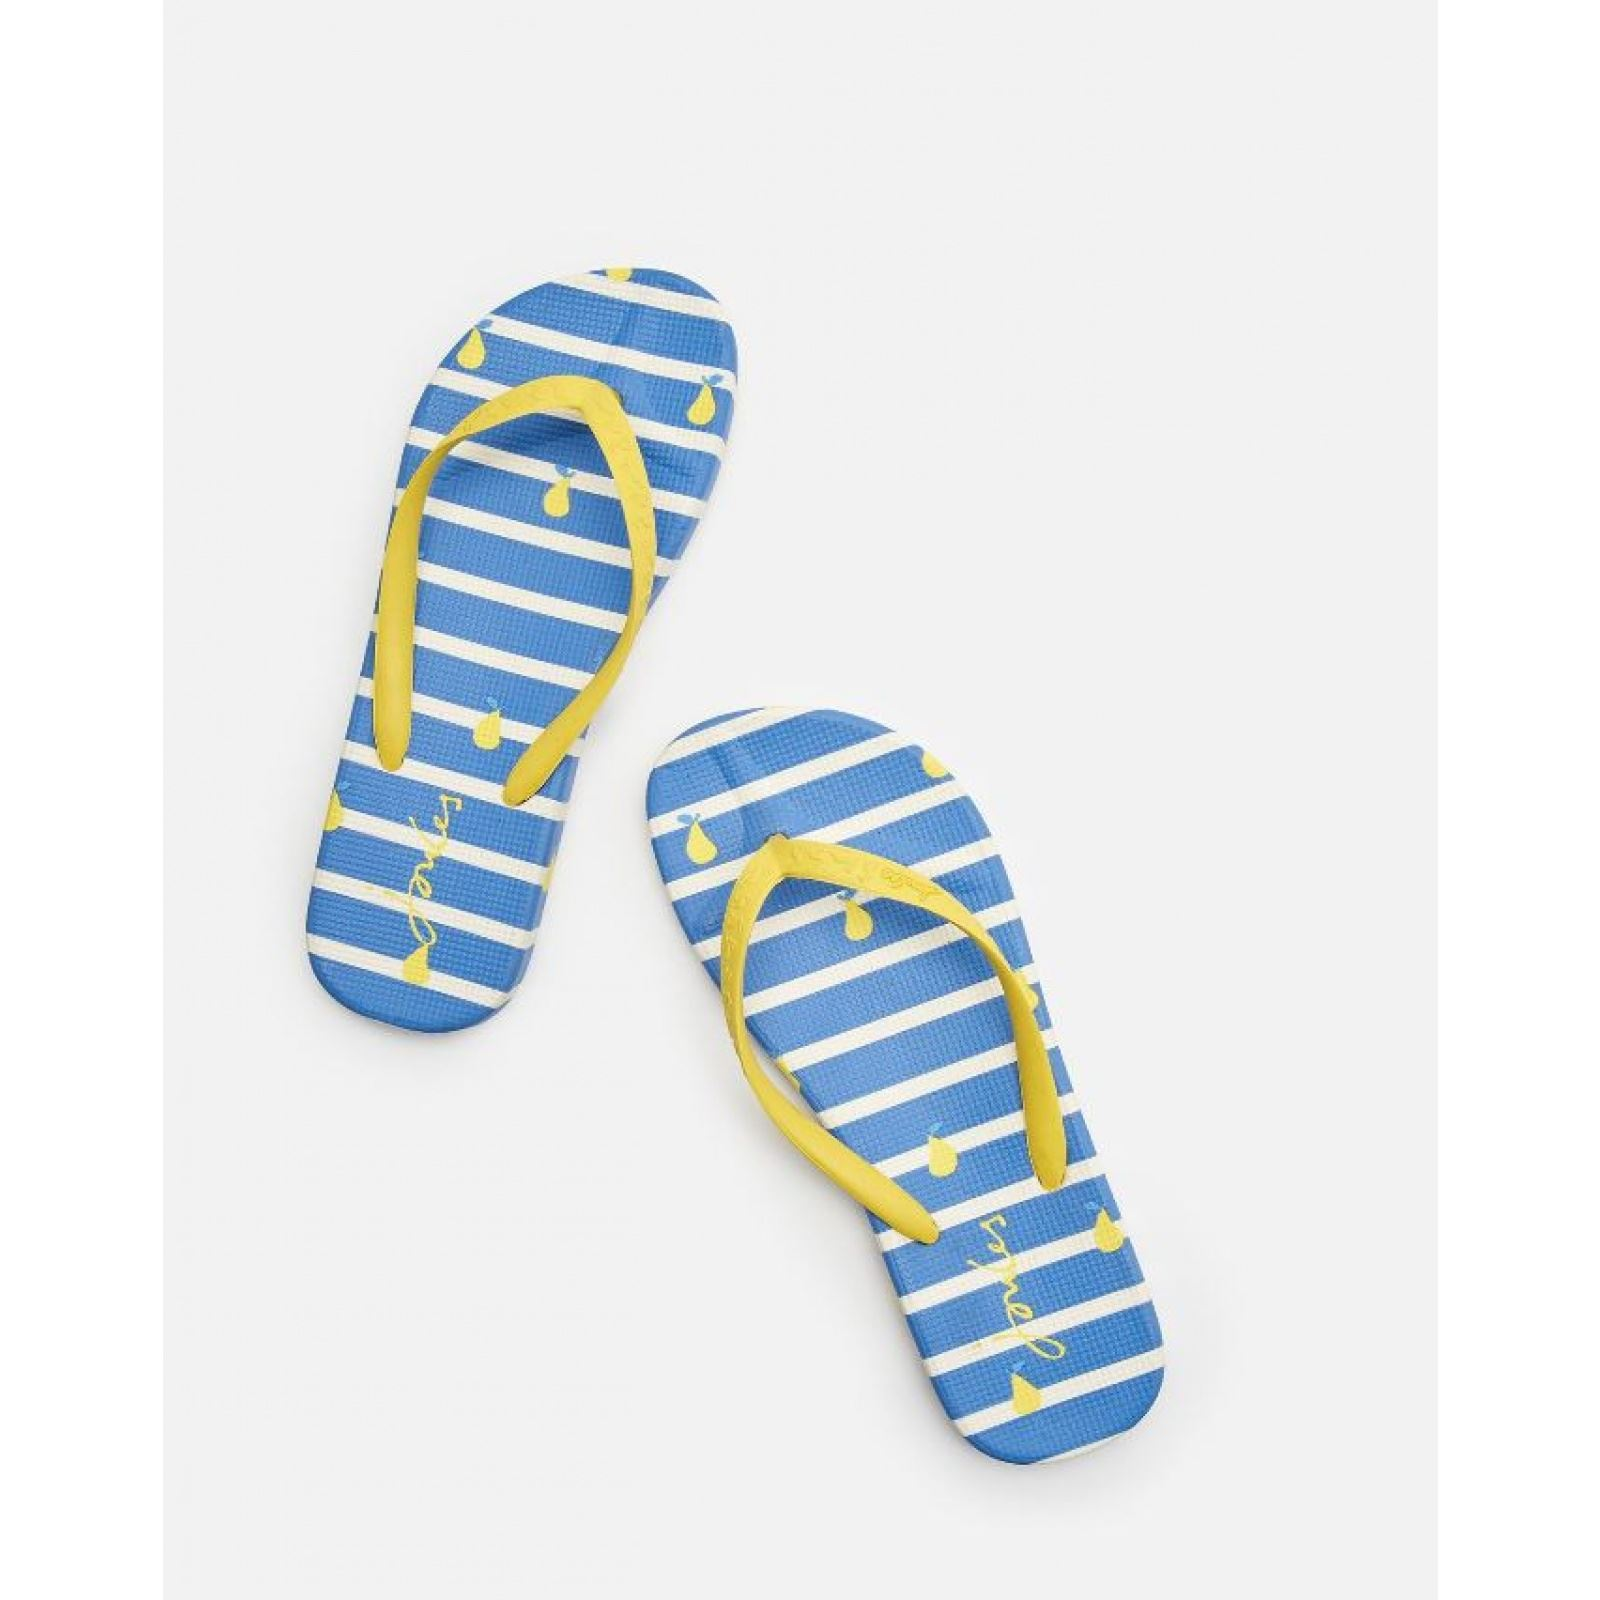 Joules-Flip-Flops-Sandals-Summer-Flip-Flop-NEW-2019-COLOURS thumbnail 4